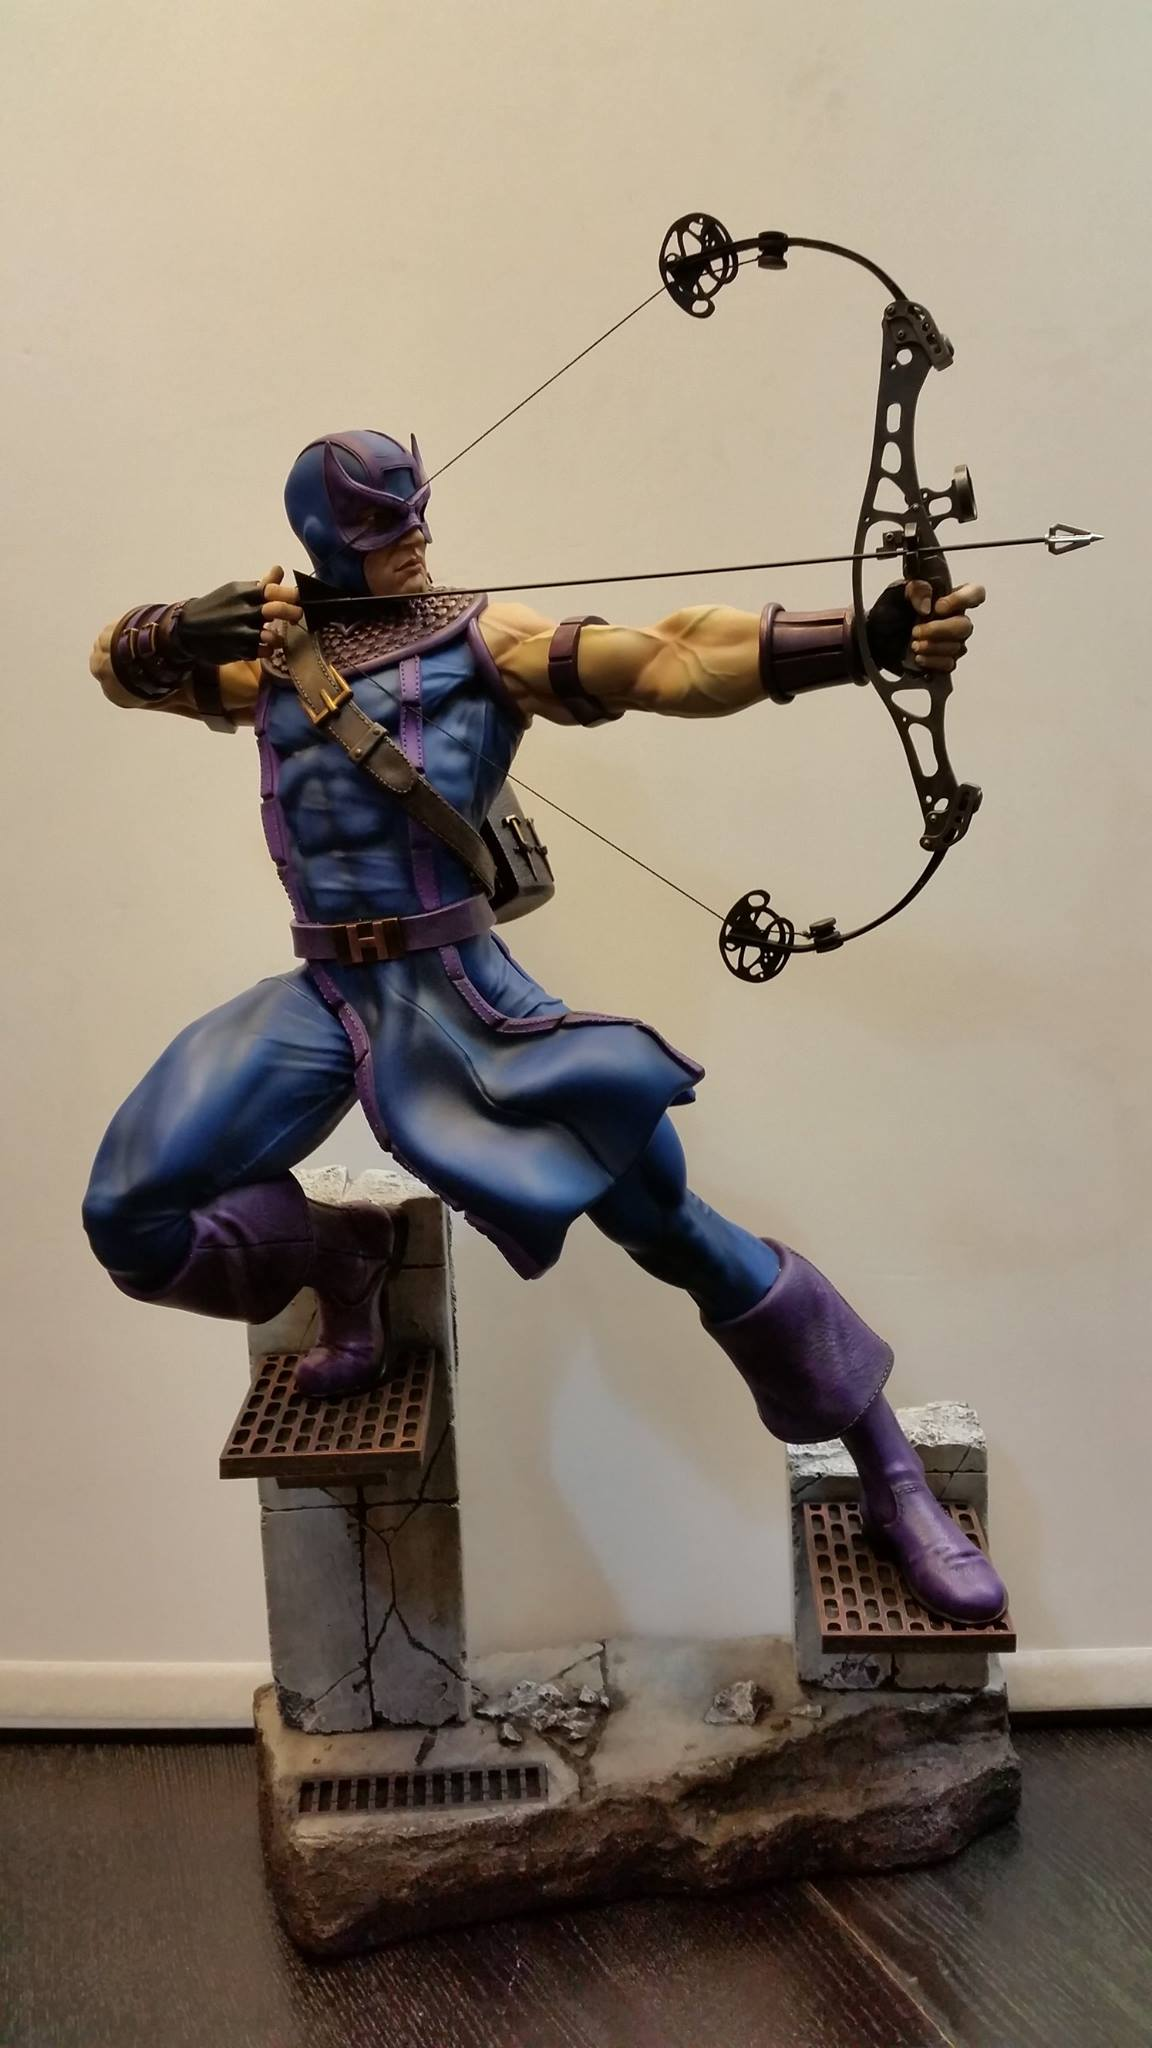 Premium Collectibles : Hawkeye - Comics version - Page 2 8878321058076614069949961878625983104777556759044o